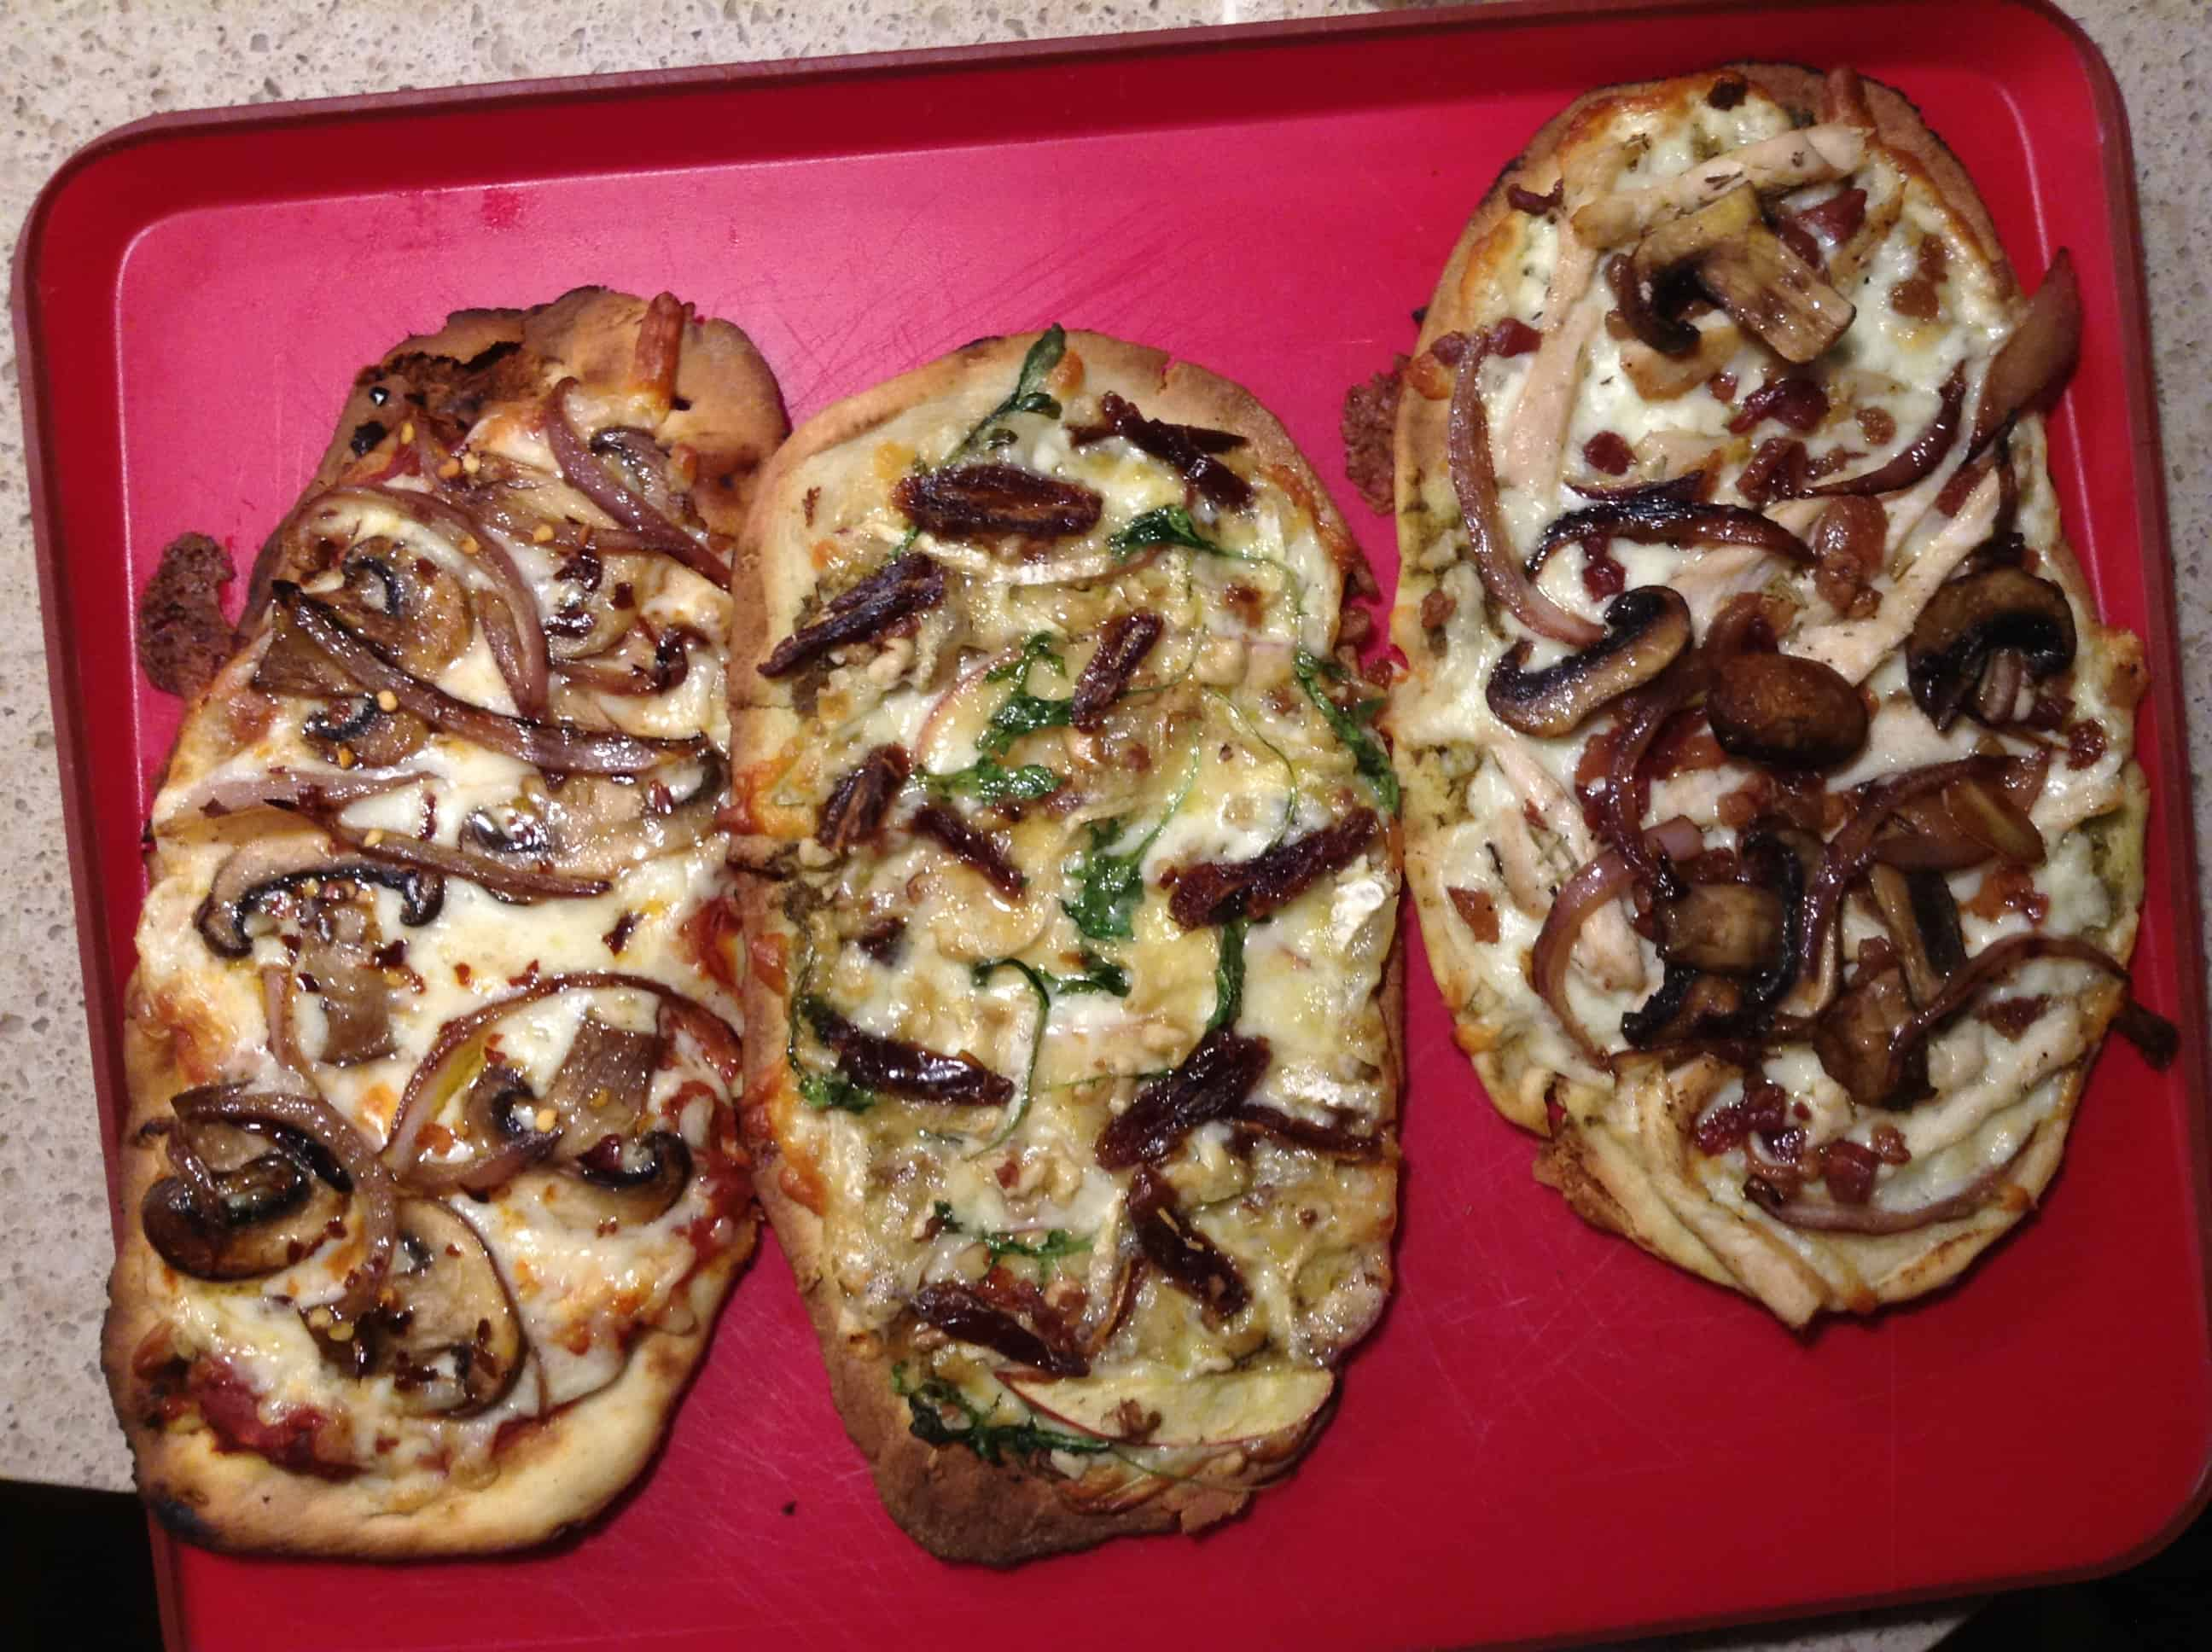 (L) spicy mushroom, onion, garlic (C) apple, walnut, brie cheese, arugula, dates (R) bacon, chicken, mushroom, onion